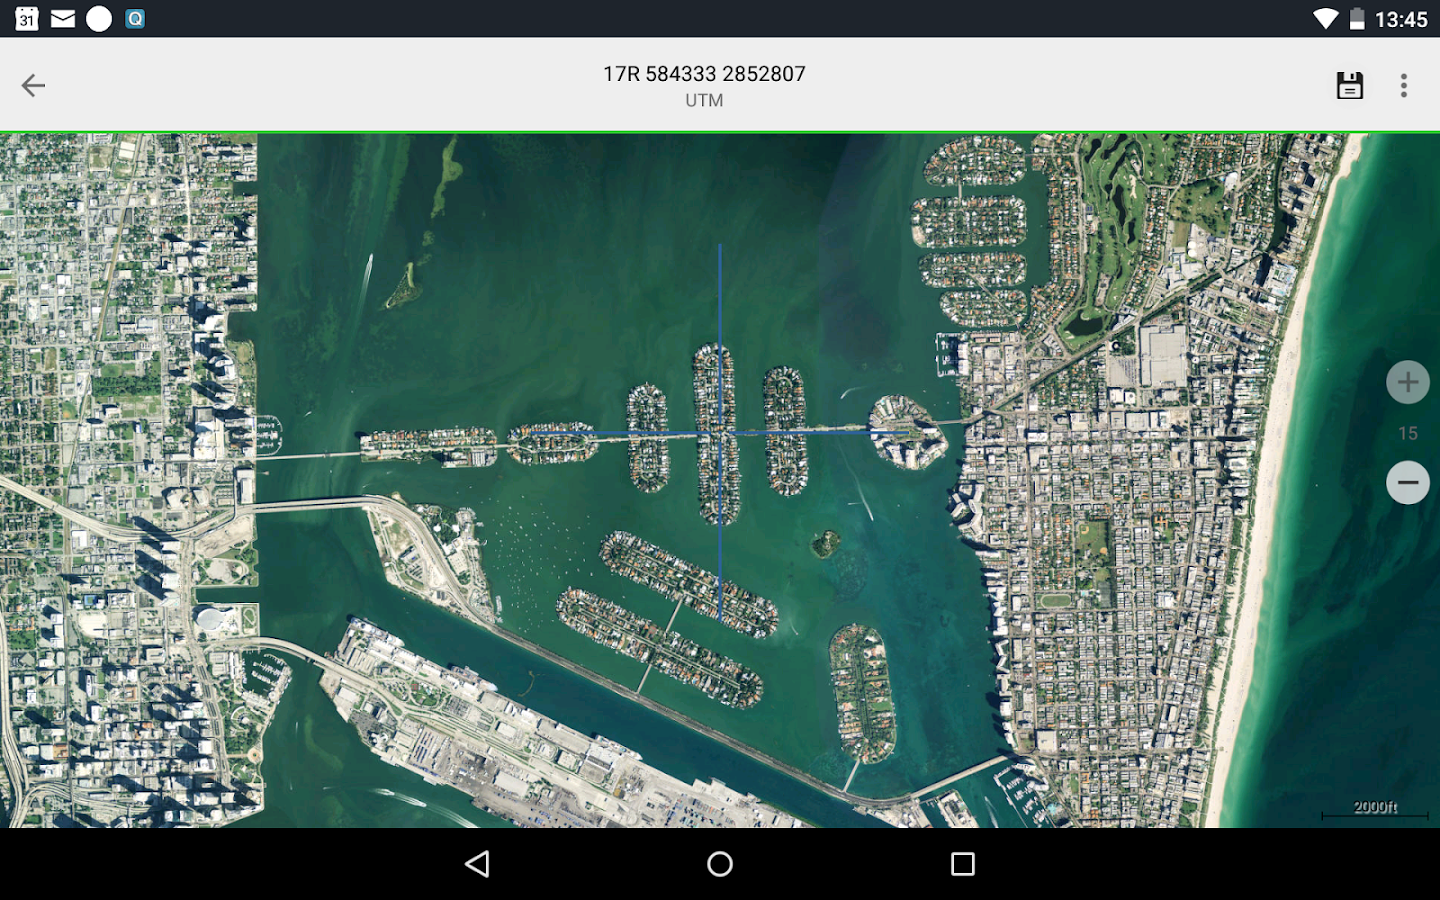 US Topo Maps Pro Android Apps On Google Play US Topo Maps Pro - Us topo maps pro